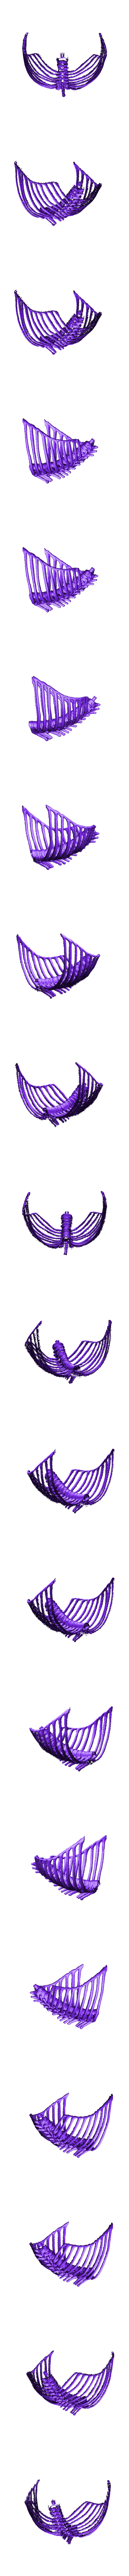 WMammoth_Spine_Ribcage_Rear_v2.stl Download free STL file Woolly Mammoth Skeleton • 3D printable object, rowiac